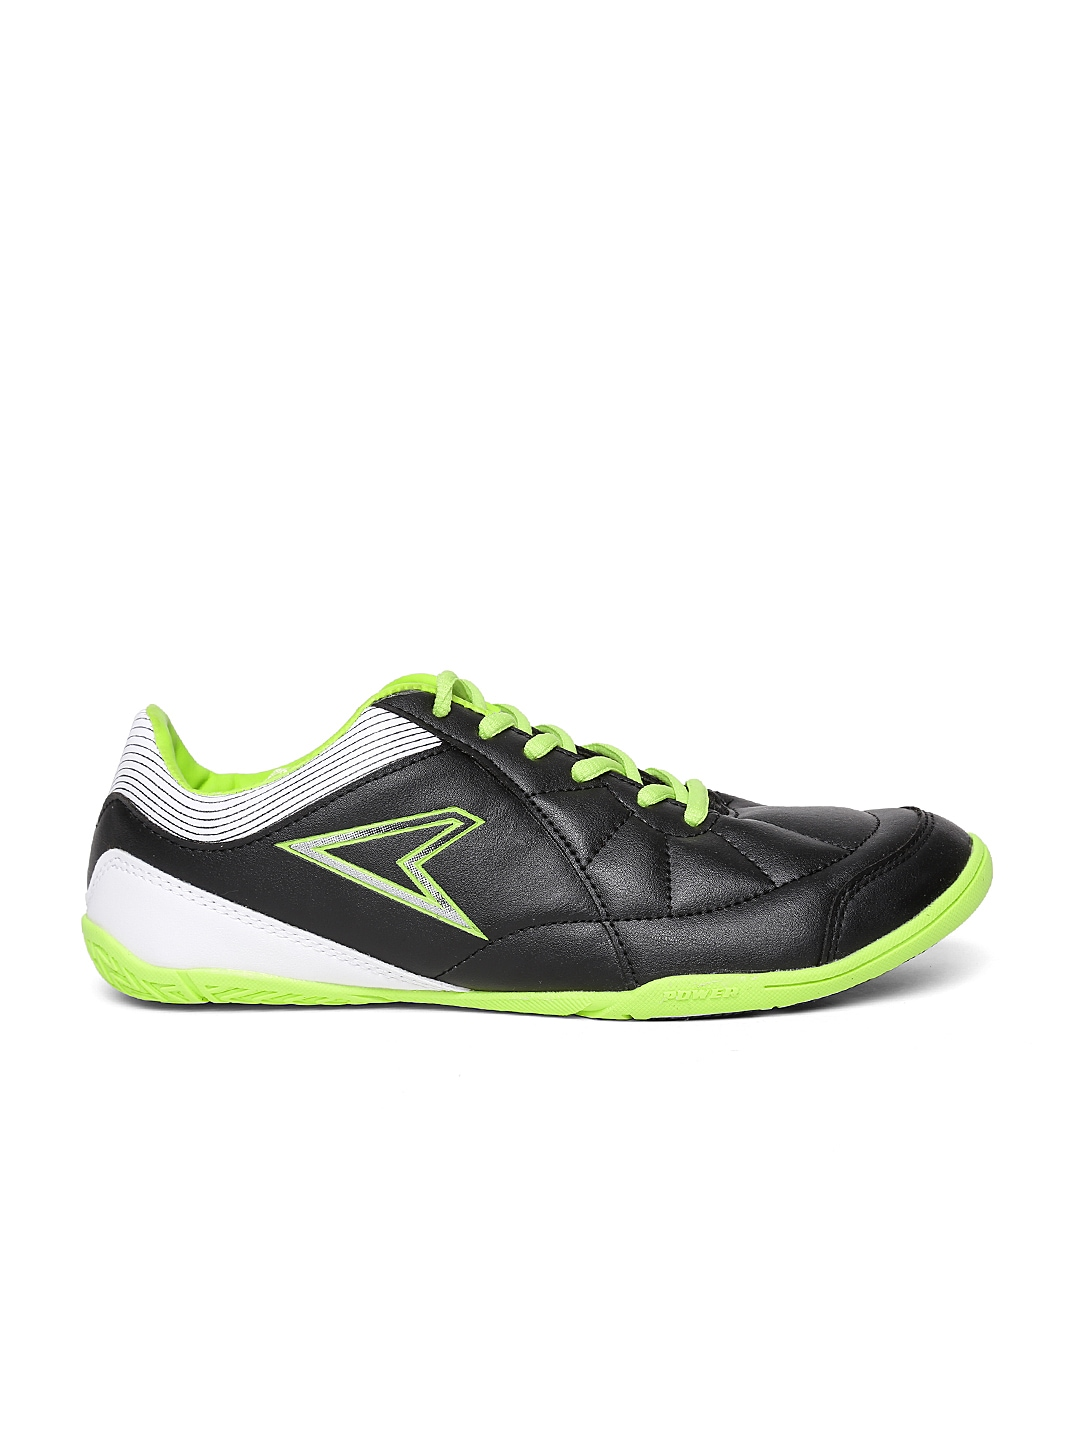 Bata Power Sports Shoes Price